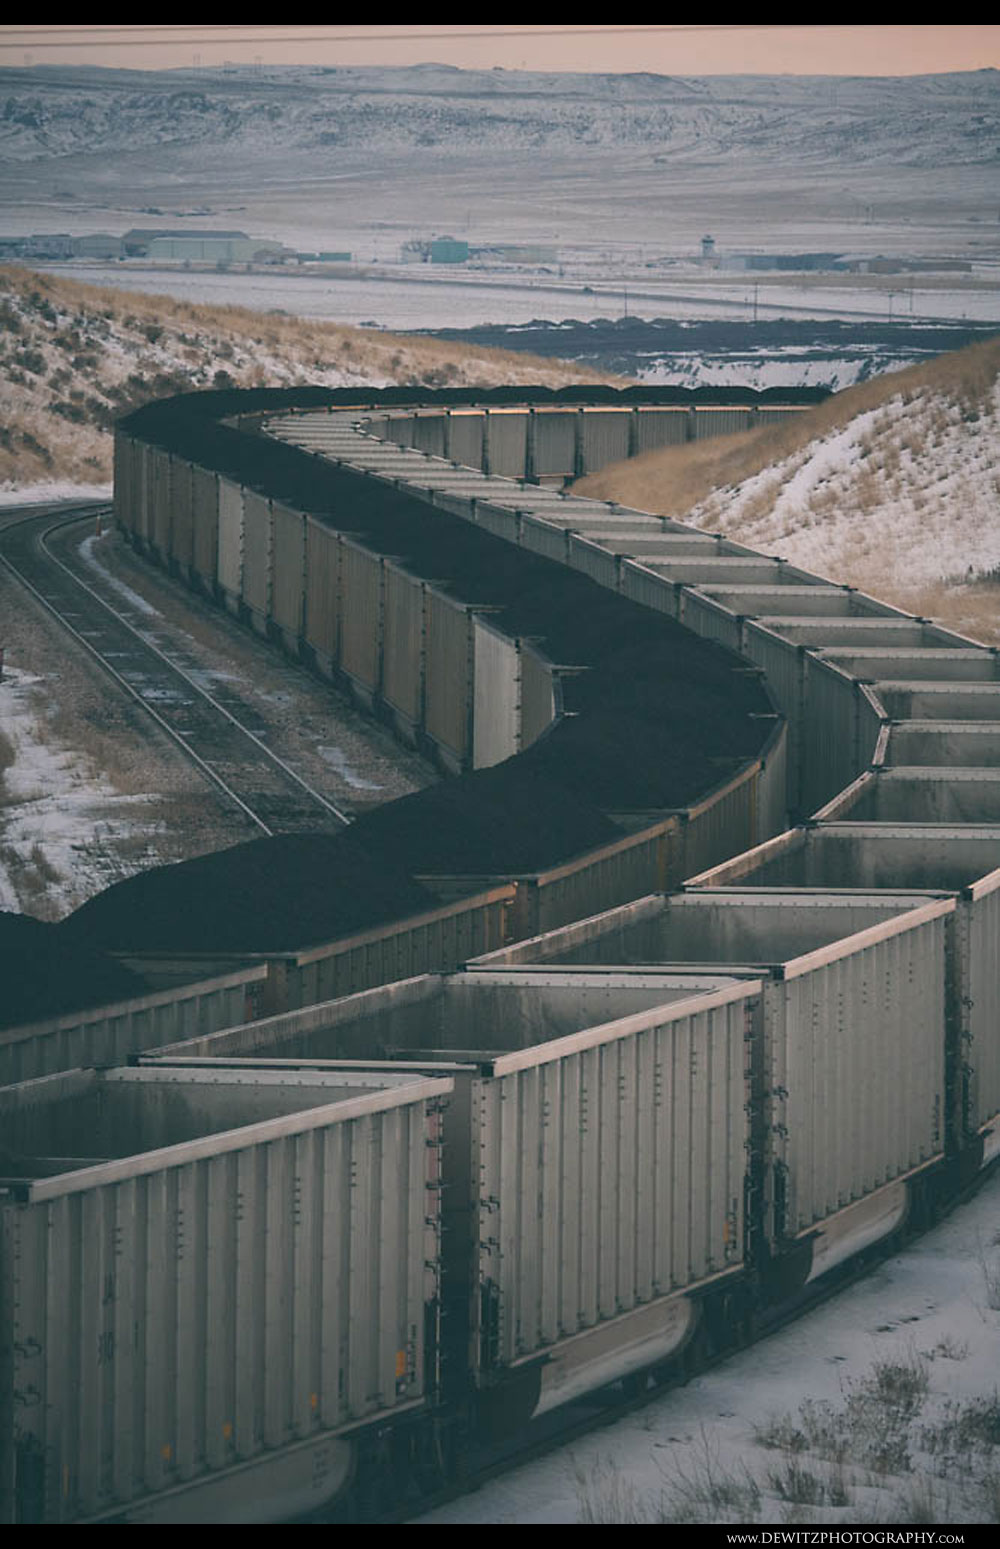 138Loaded and Empty Aluminum Coal Hoppers Curve Through the Landscape